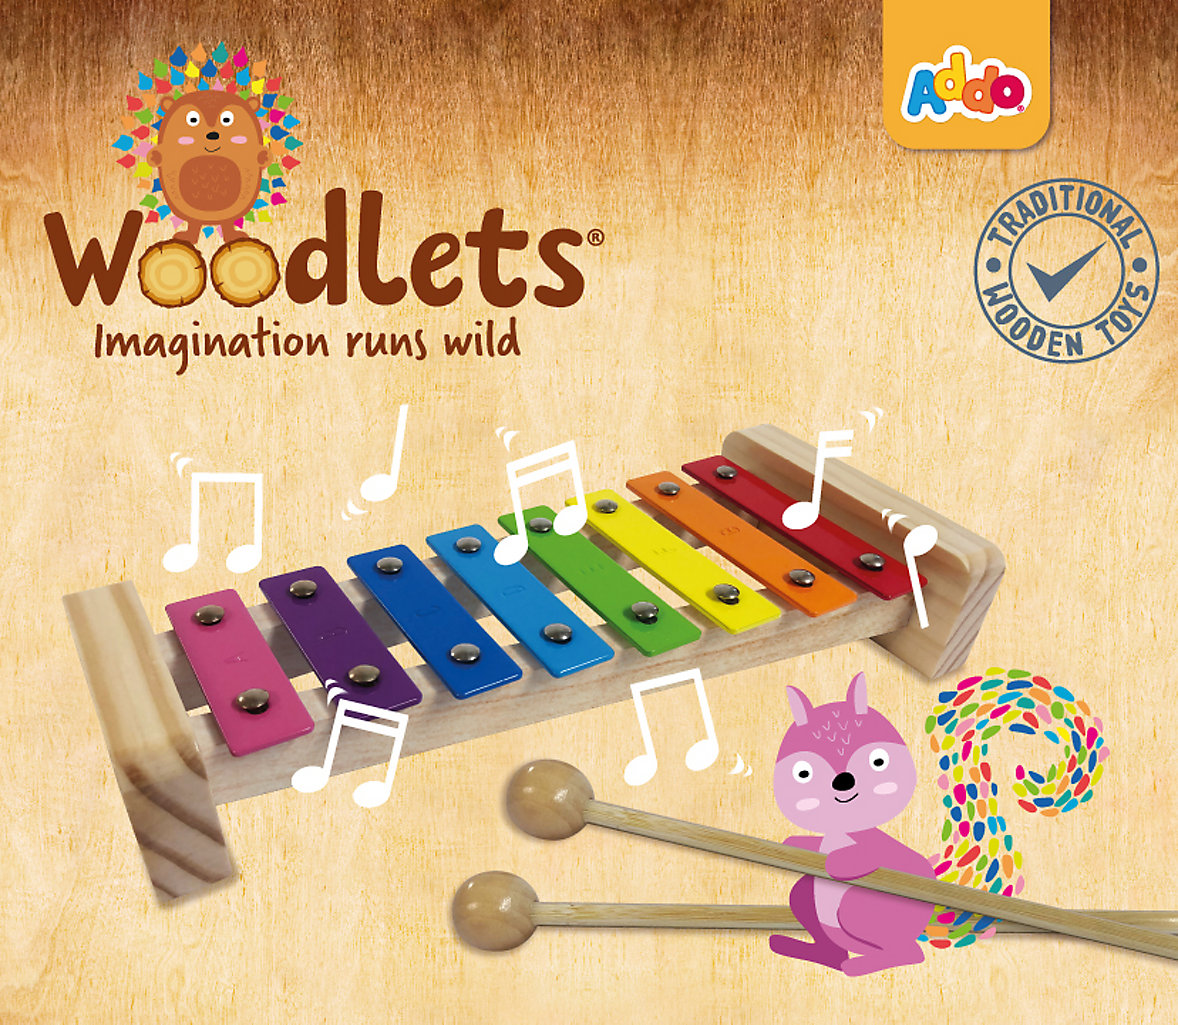 Let your imagination run wild with Addo Woodlets at Big W